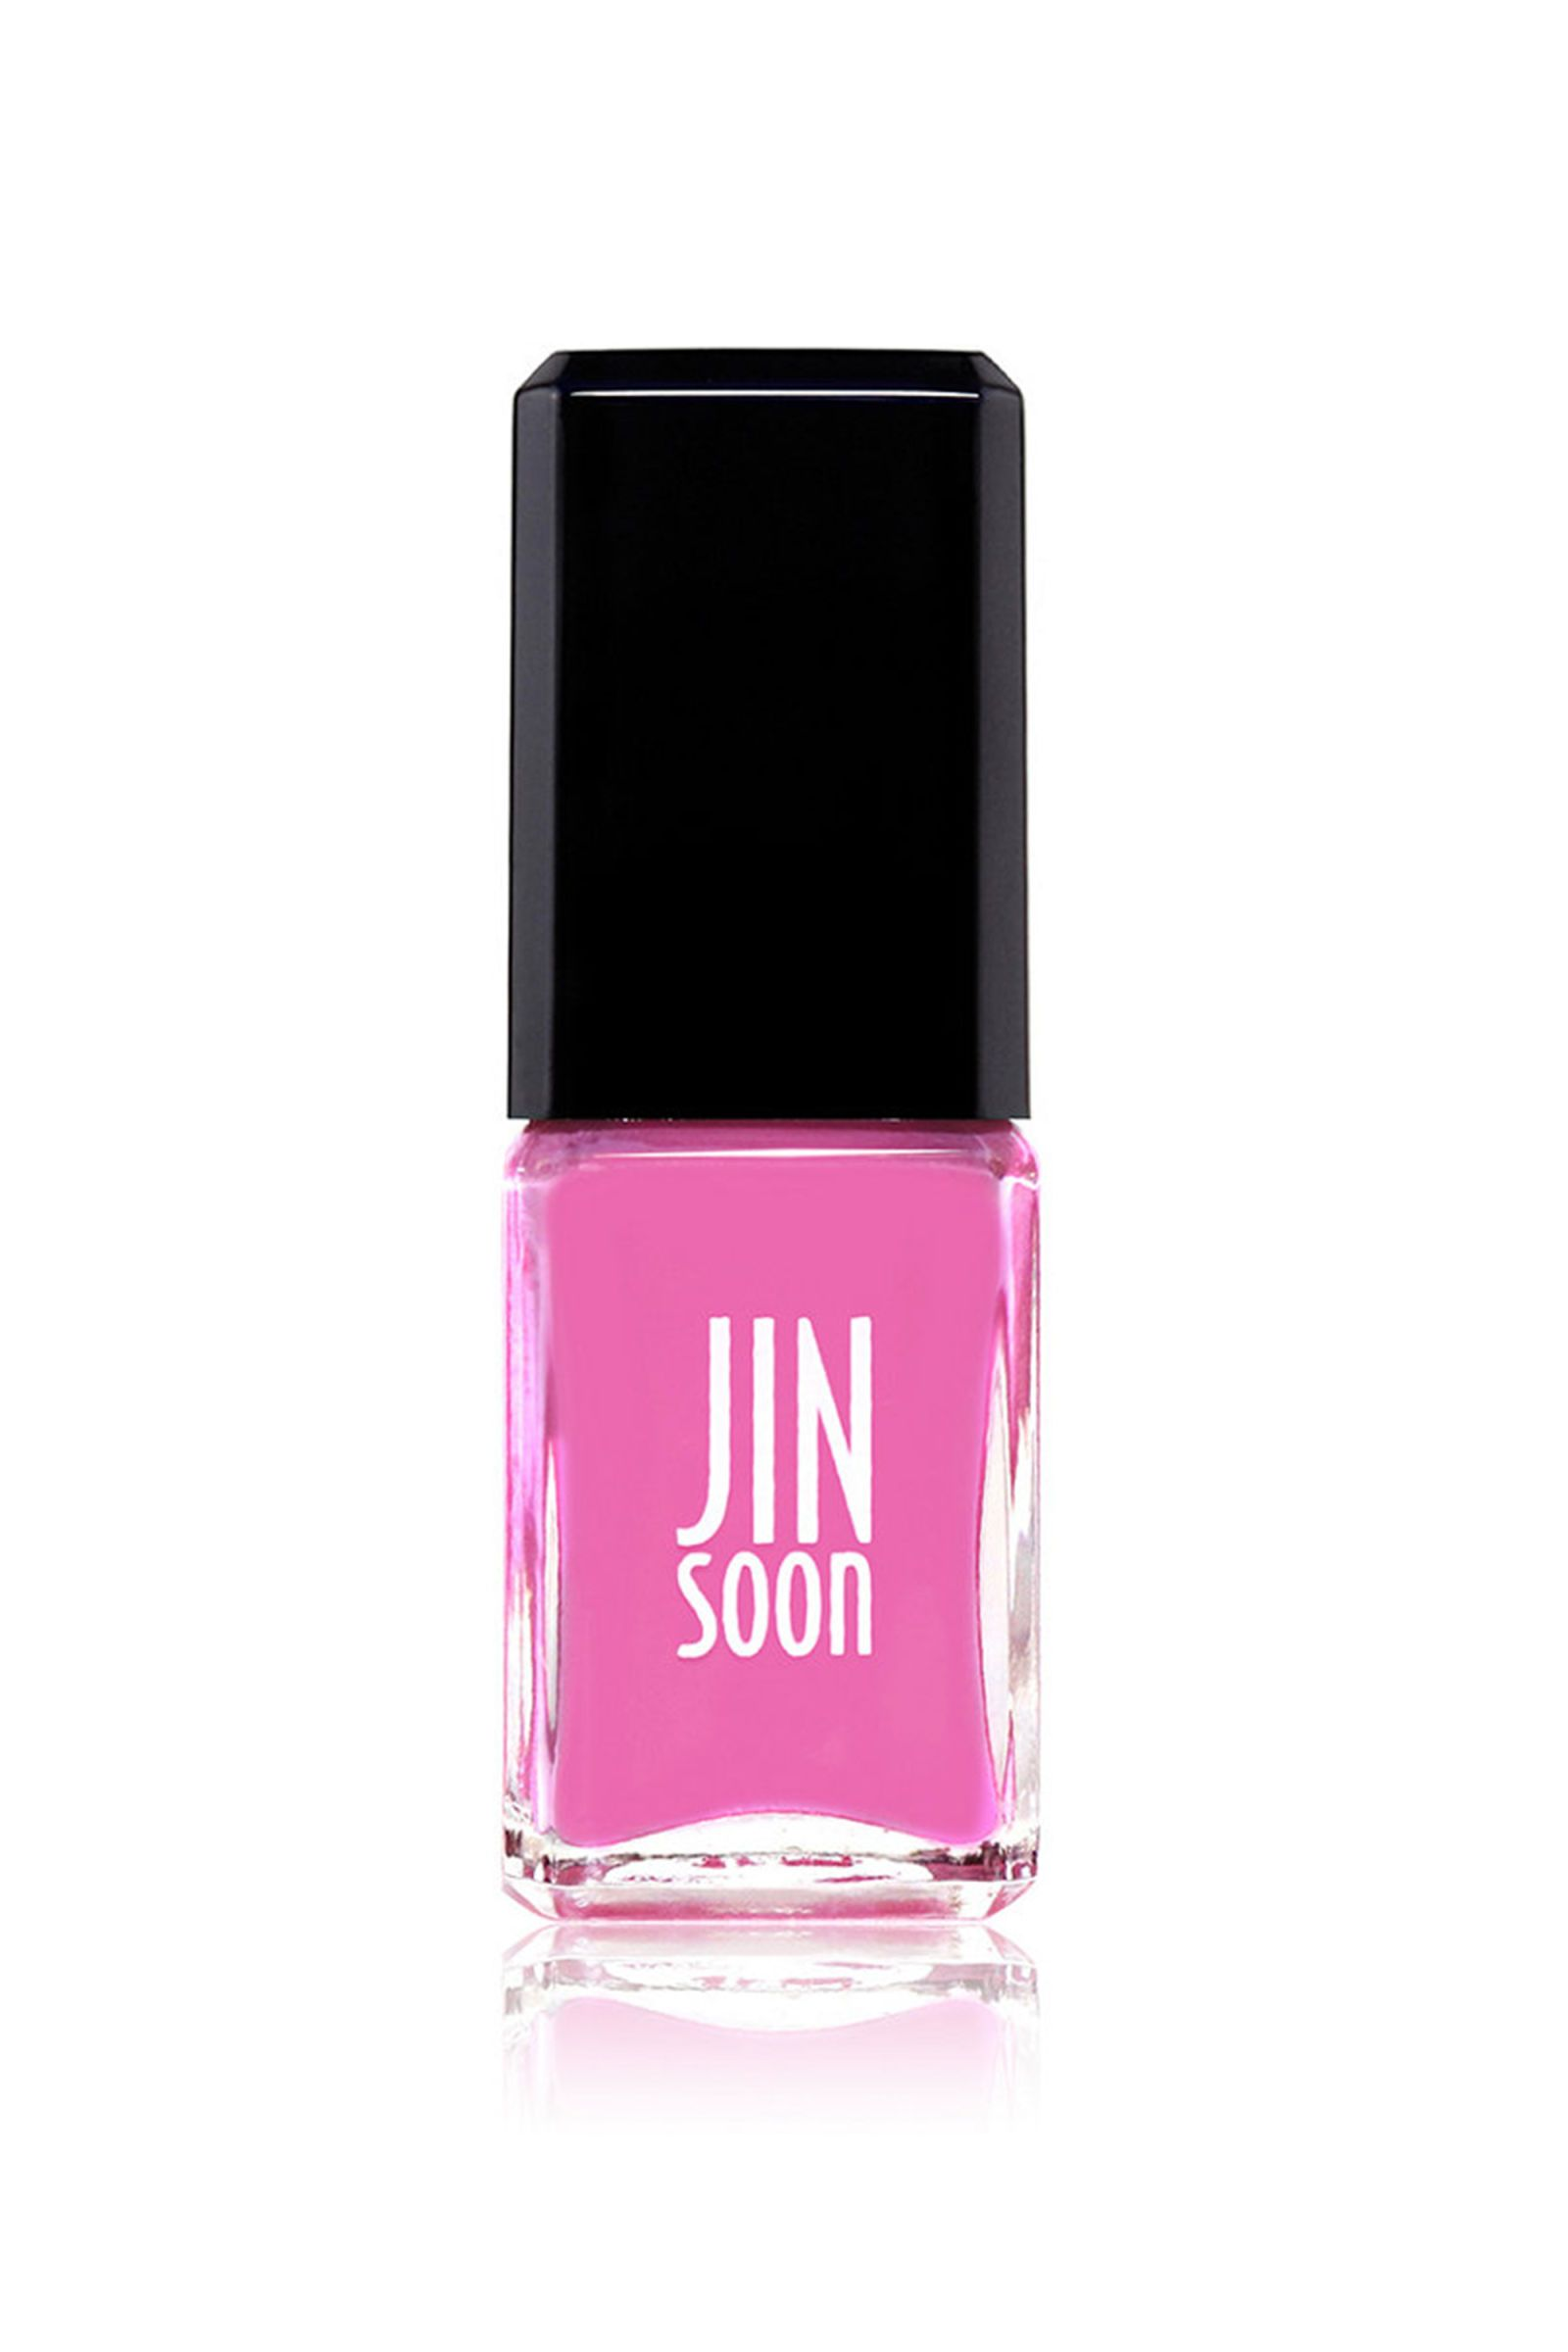 15 New Nail Polishes to Try for Spring | Nails & Nail art I ...